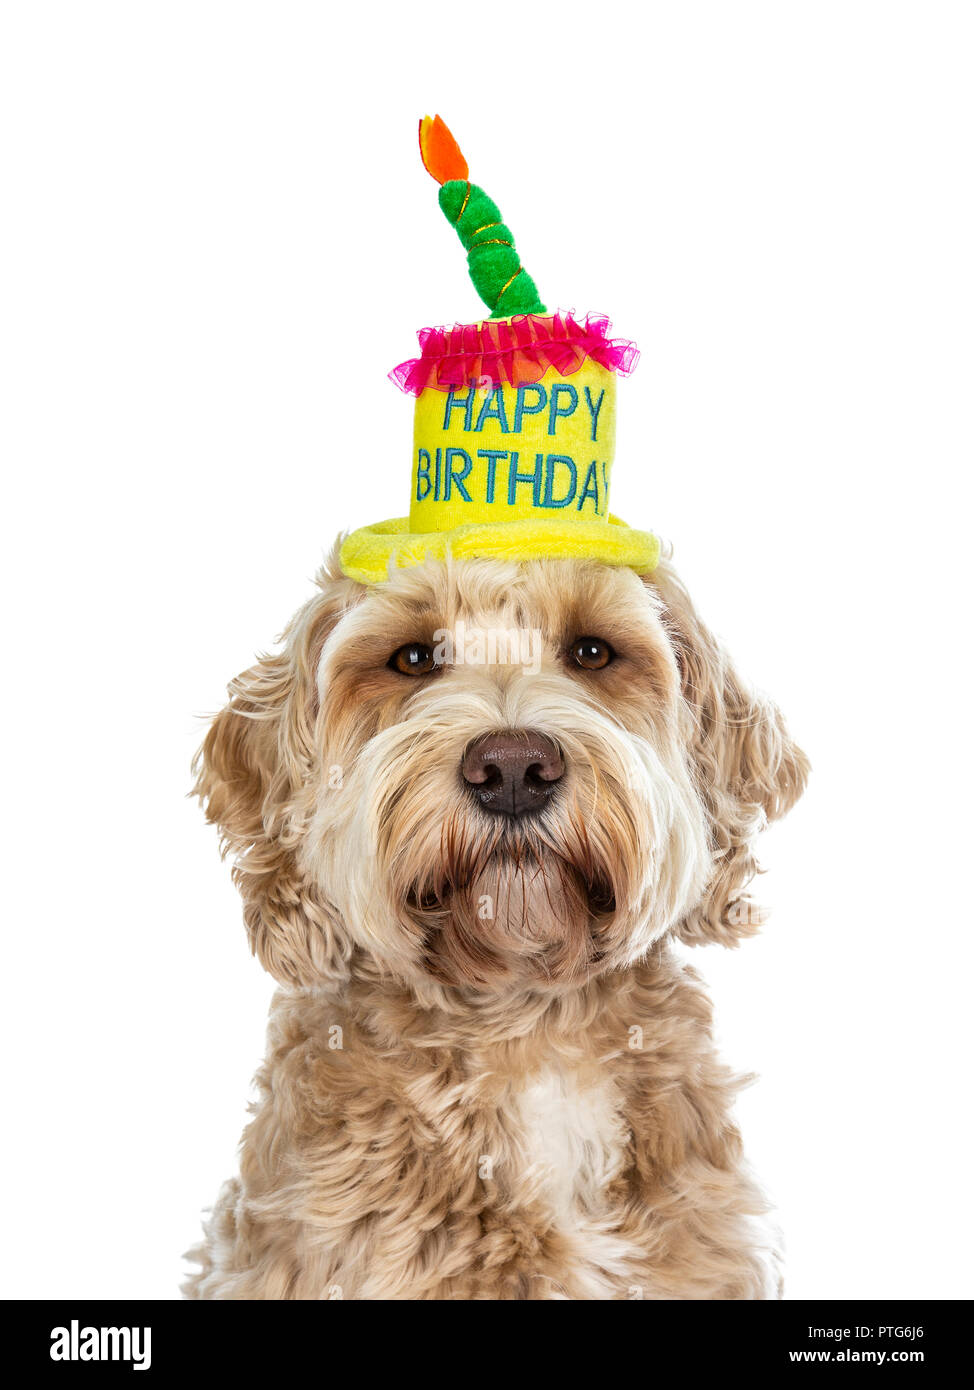 Head Shot Of Pretty Golden Adult Labradoodle Dog Wearing A Happy Birthday Cake Hat Looking Straight In Lense Isolated On White Background